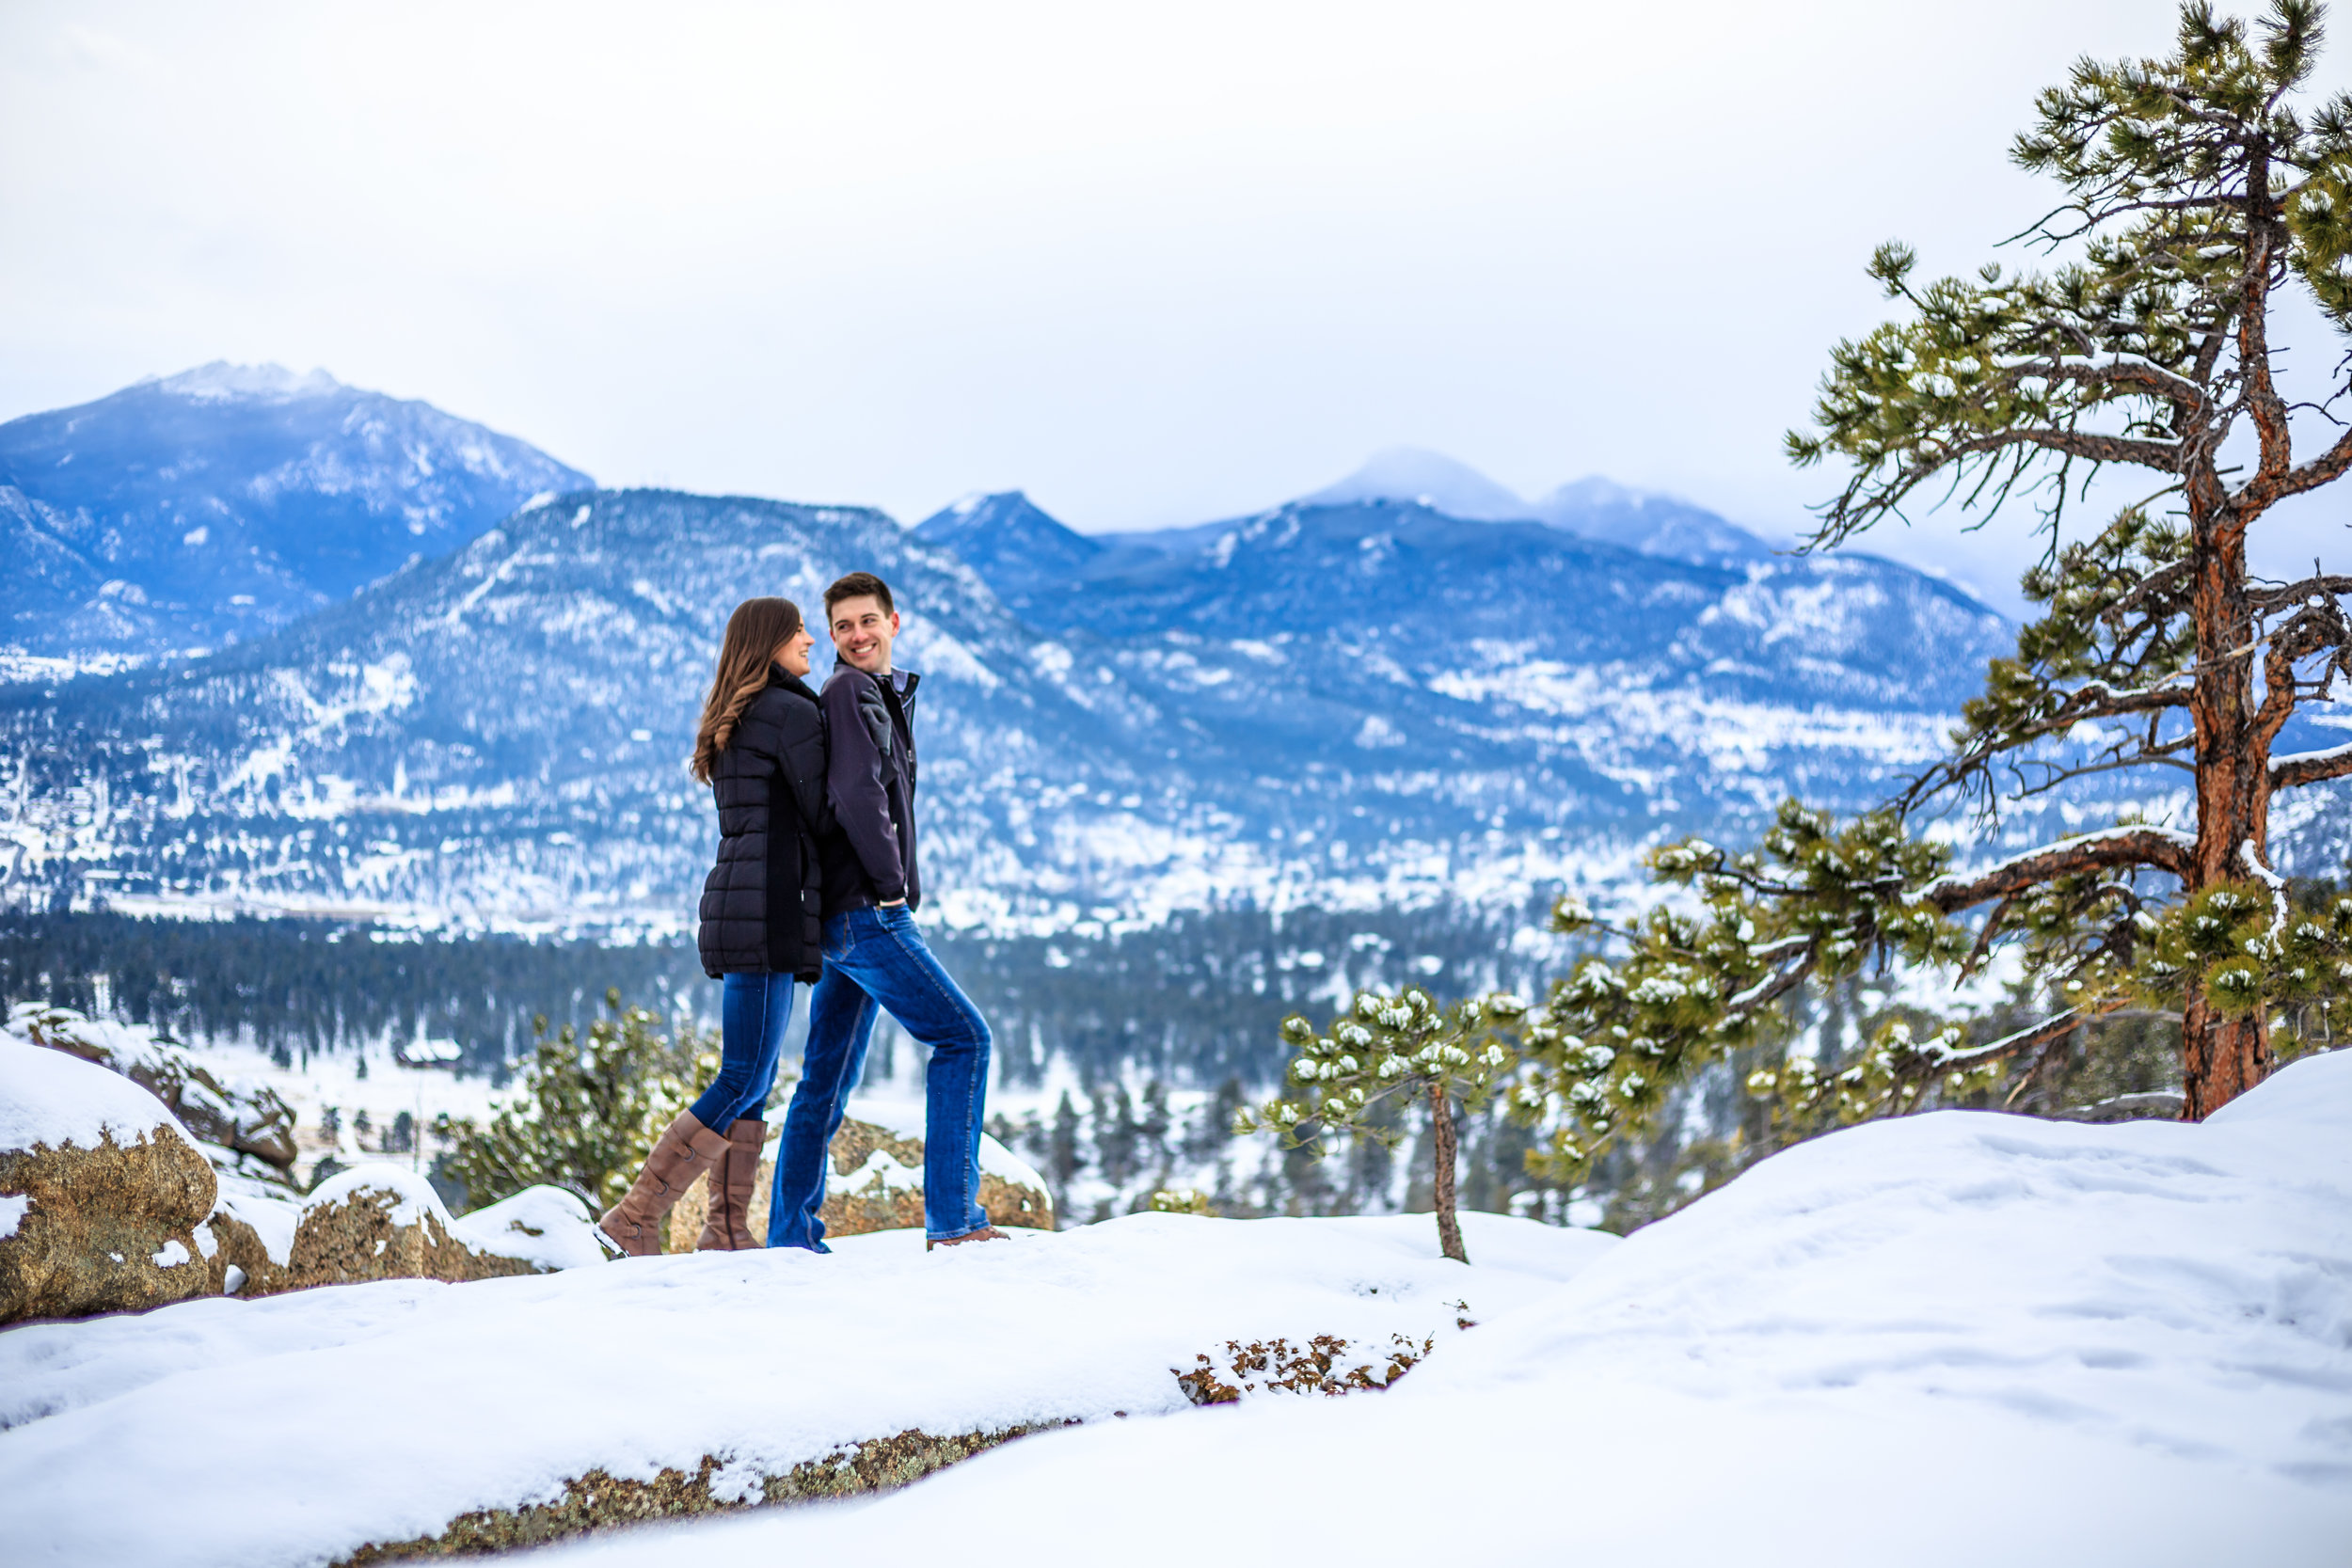 Desiree & Patrick - Estes Park, CO